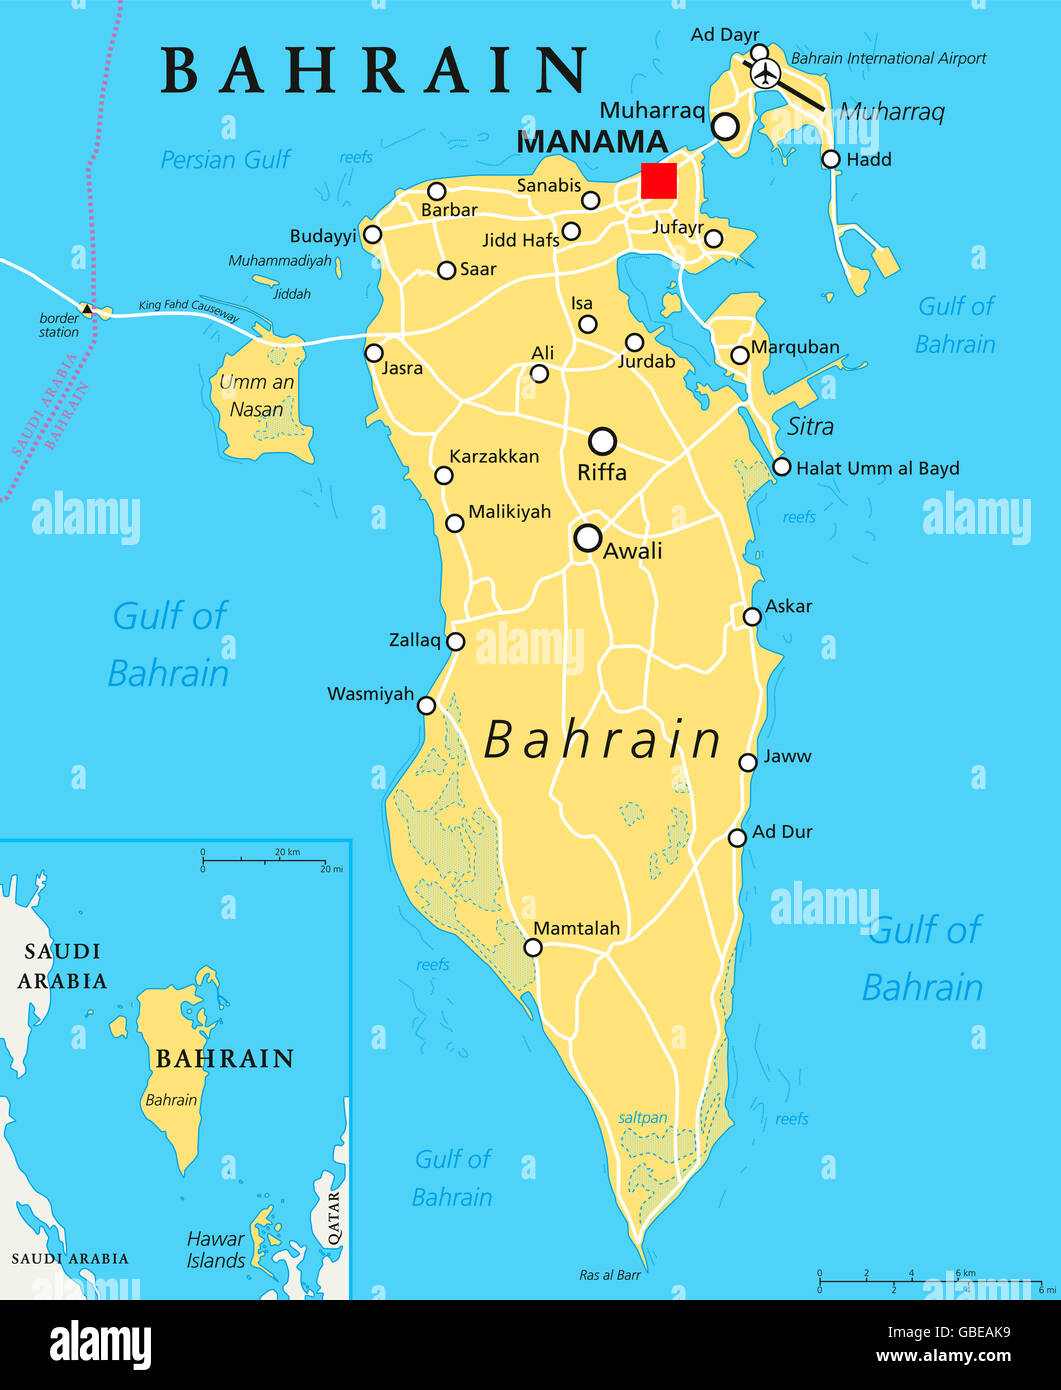 qatar country map with Stock Photo Bahrain Political Map With Capital Manama Island Country Archipelago 110339133 on Gas Power Plants in addition Capital Of China Map additionally Stock Photo Bahrain Political Map With Capital Manama Island Country Archipelago 110339133 also The Middle East moreover Cartes Moyen Orient MIDDLE EAST.